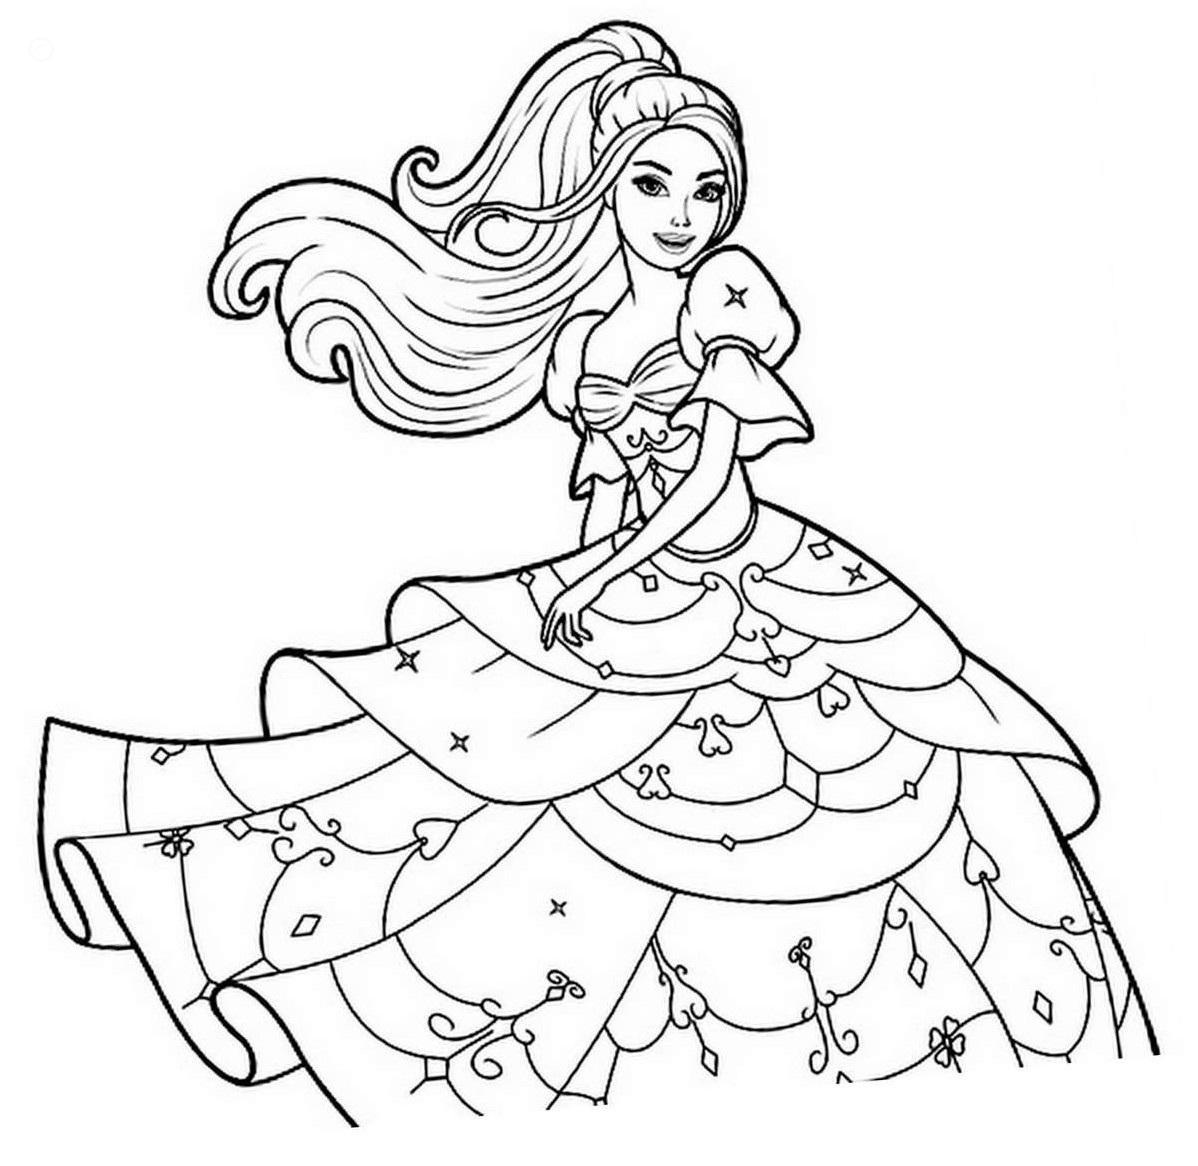 barbie princess coloring book barbie princess coloring pages at getcoloringscom free coloring book princess barbie